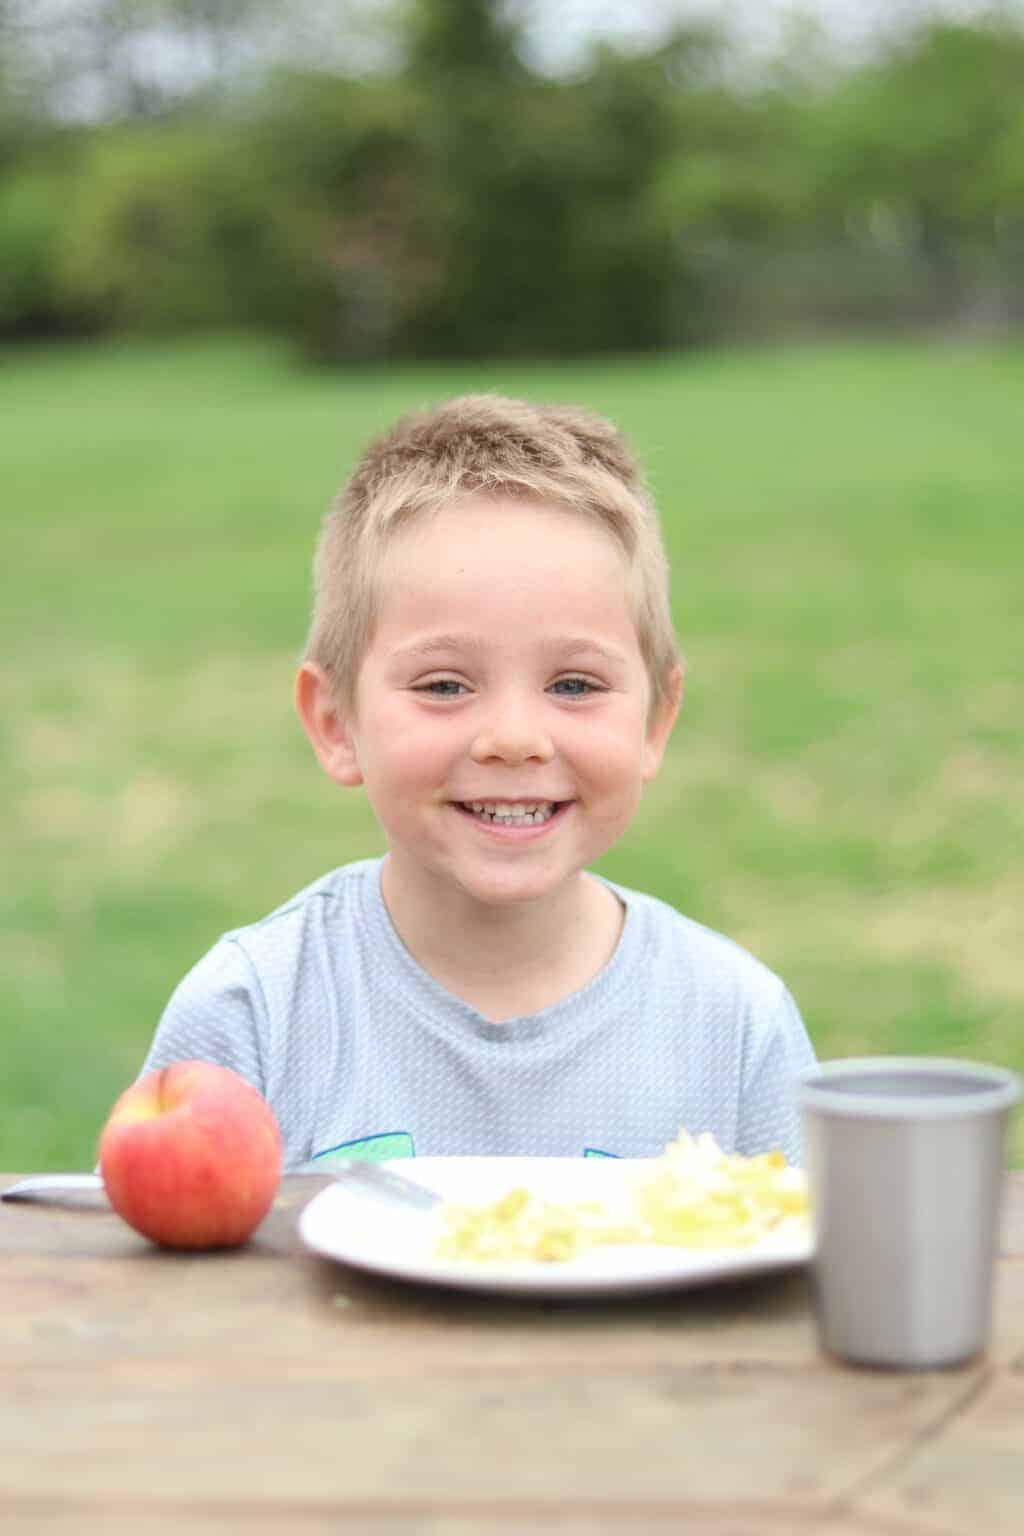 Follow along for 10 proven tips to get your picky child to try something new and eat healthier.